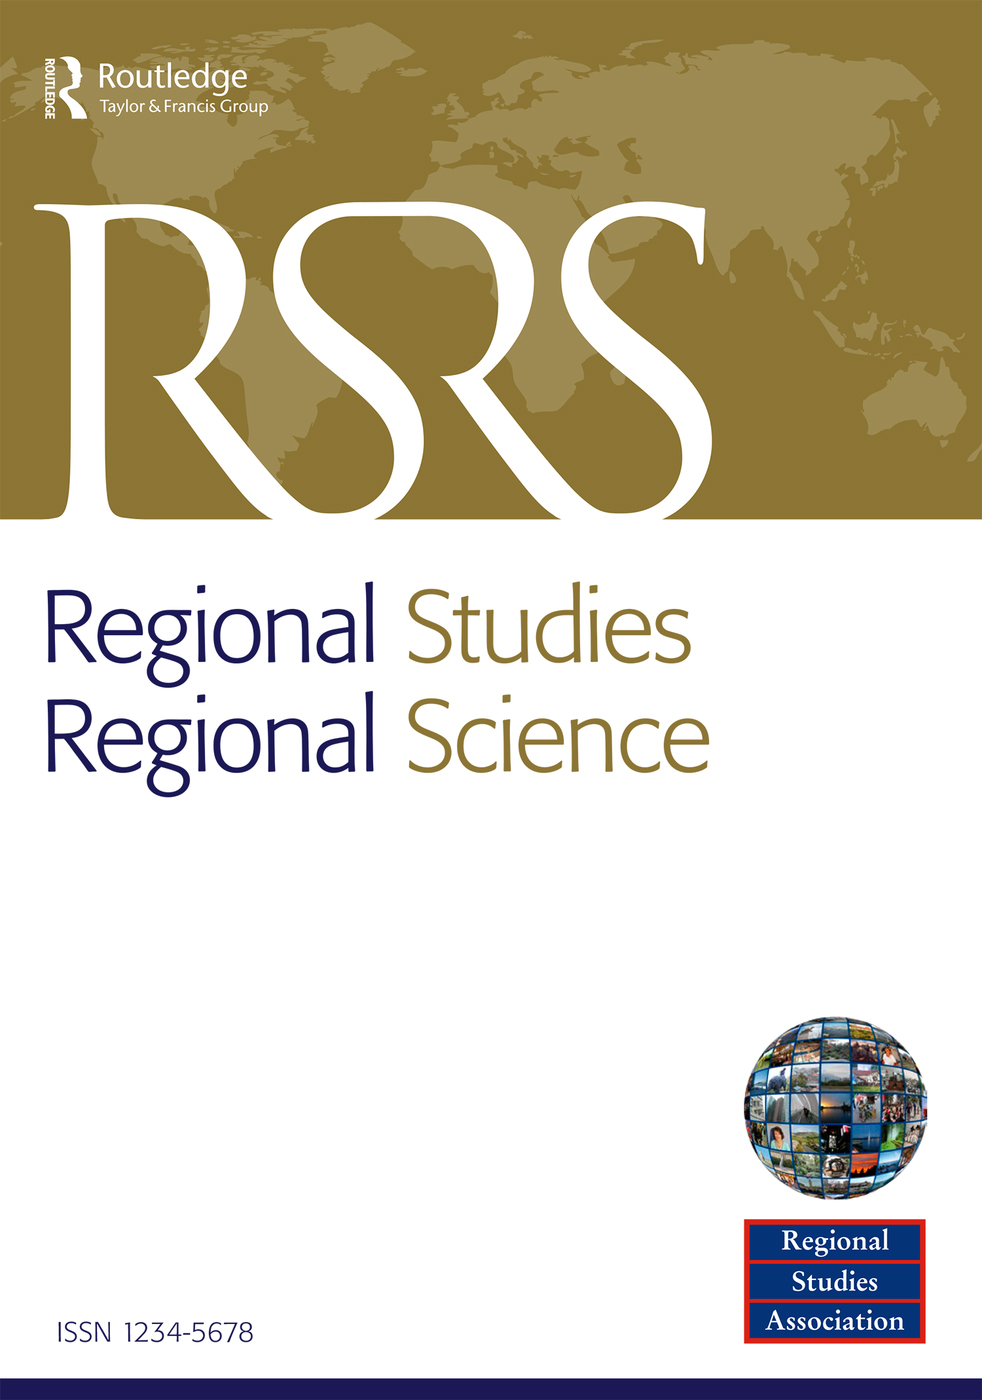 Regional Studies, Regional Science: Vol 6, No 1